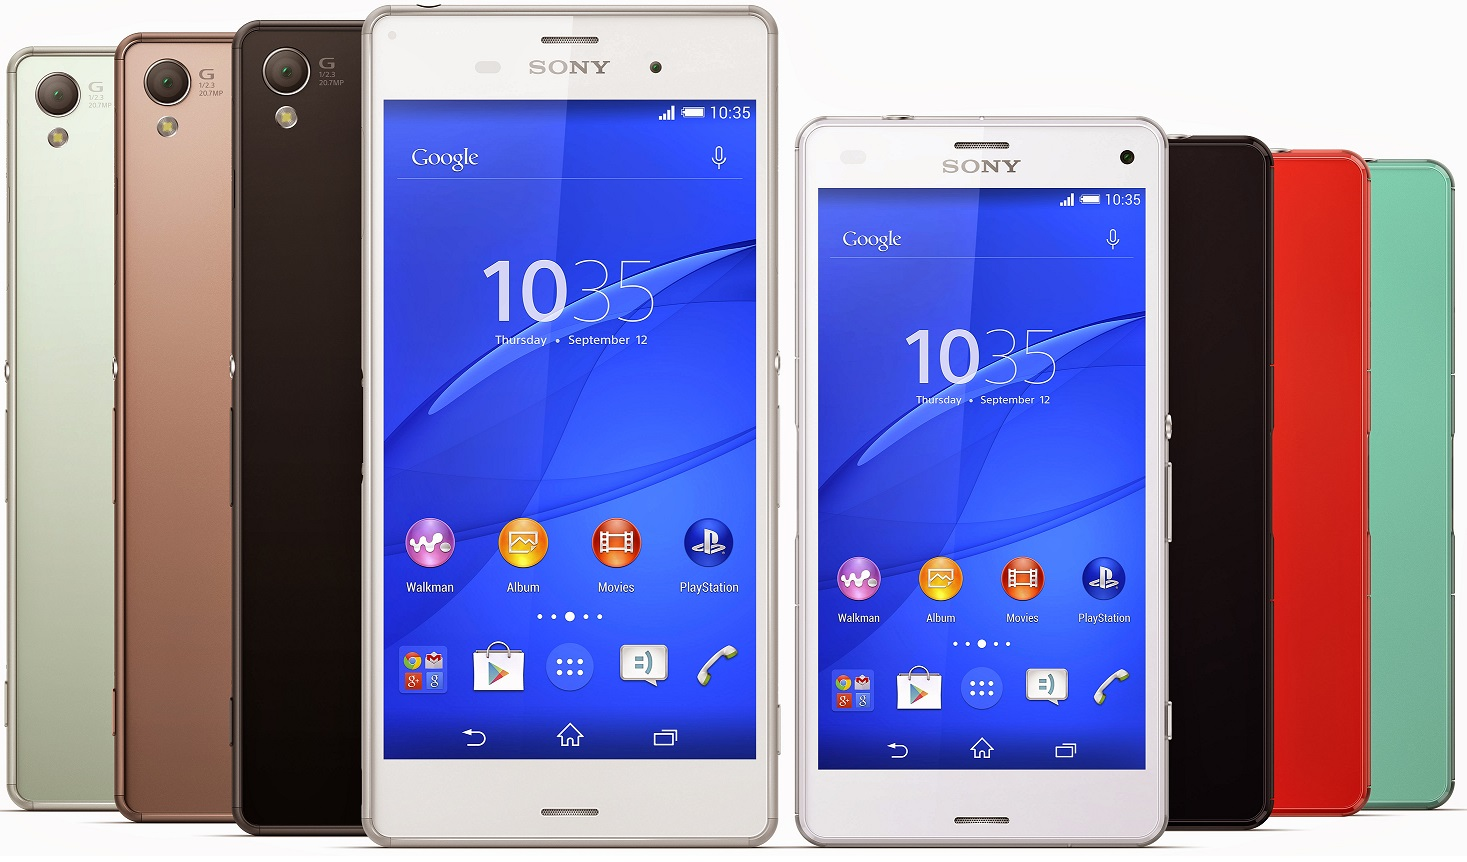 sony xperia z3 compact review well played sony the pathology of technology